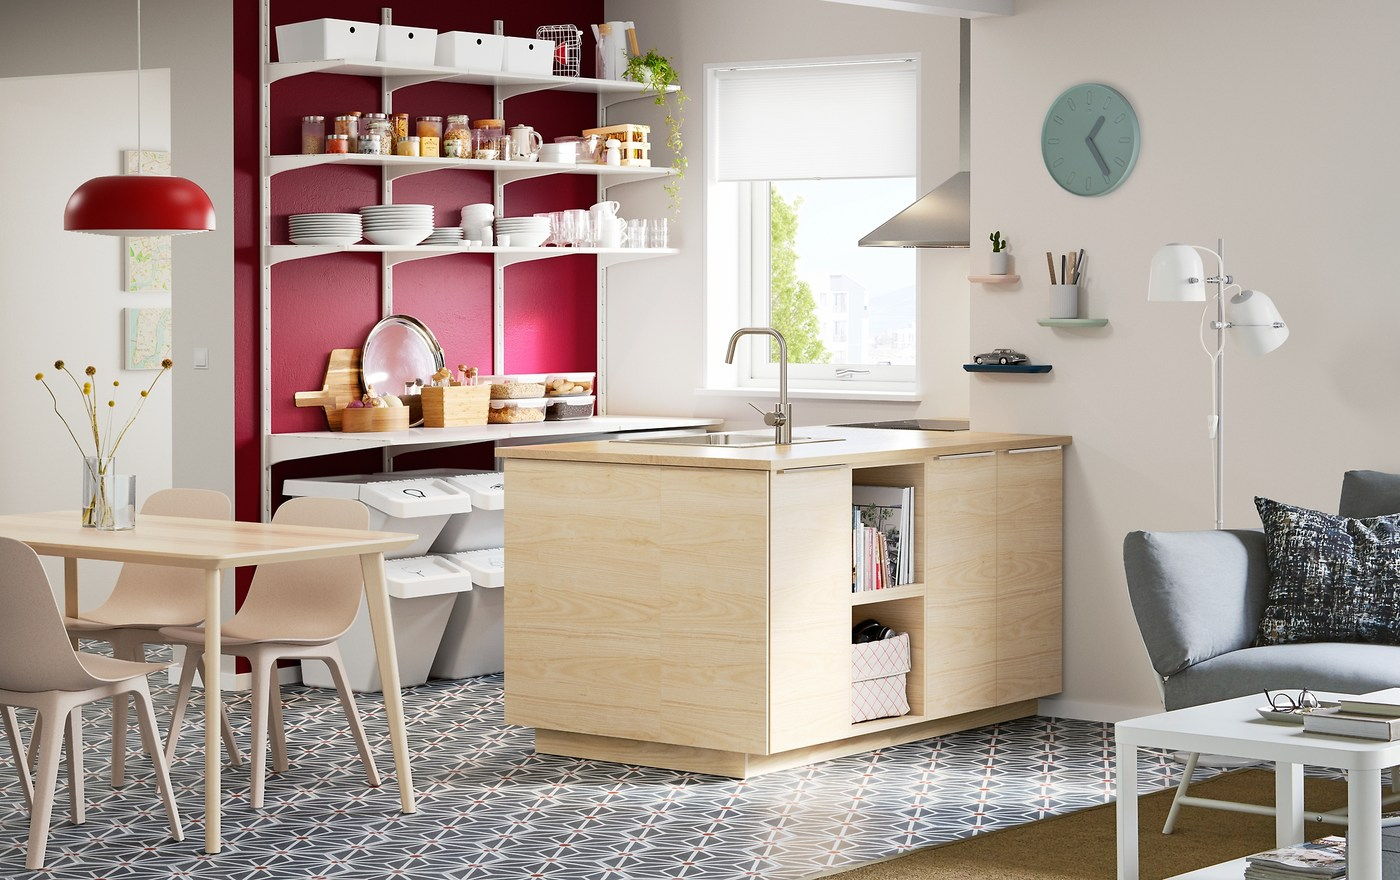 Add a Scandinavian modern kitchen to the centre of your open-plan kitchen, dining and living area with ASKERSUND doors and open storage in ash.